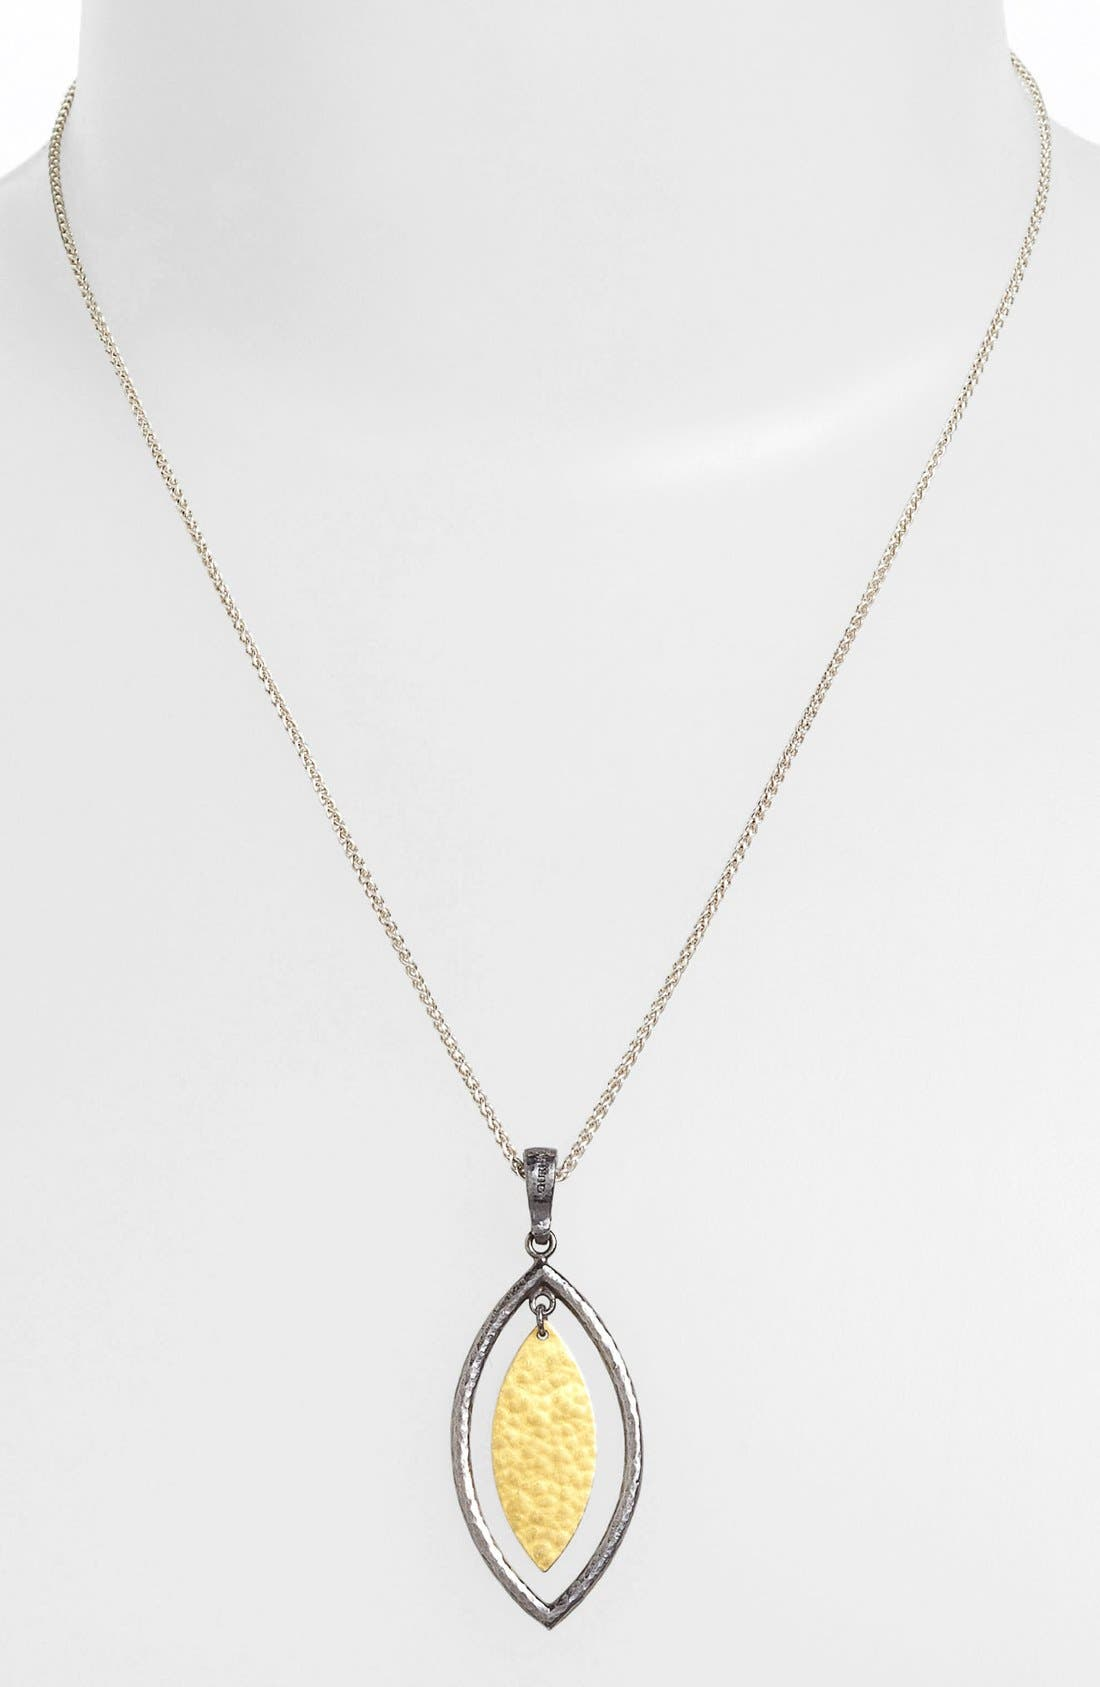 Alternate Image 1 Selected - Gurhan 'Willow' Blackened Silver & Gold Pendant Necklace